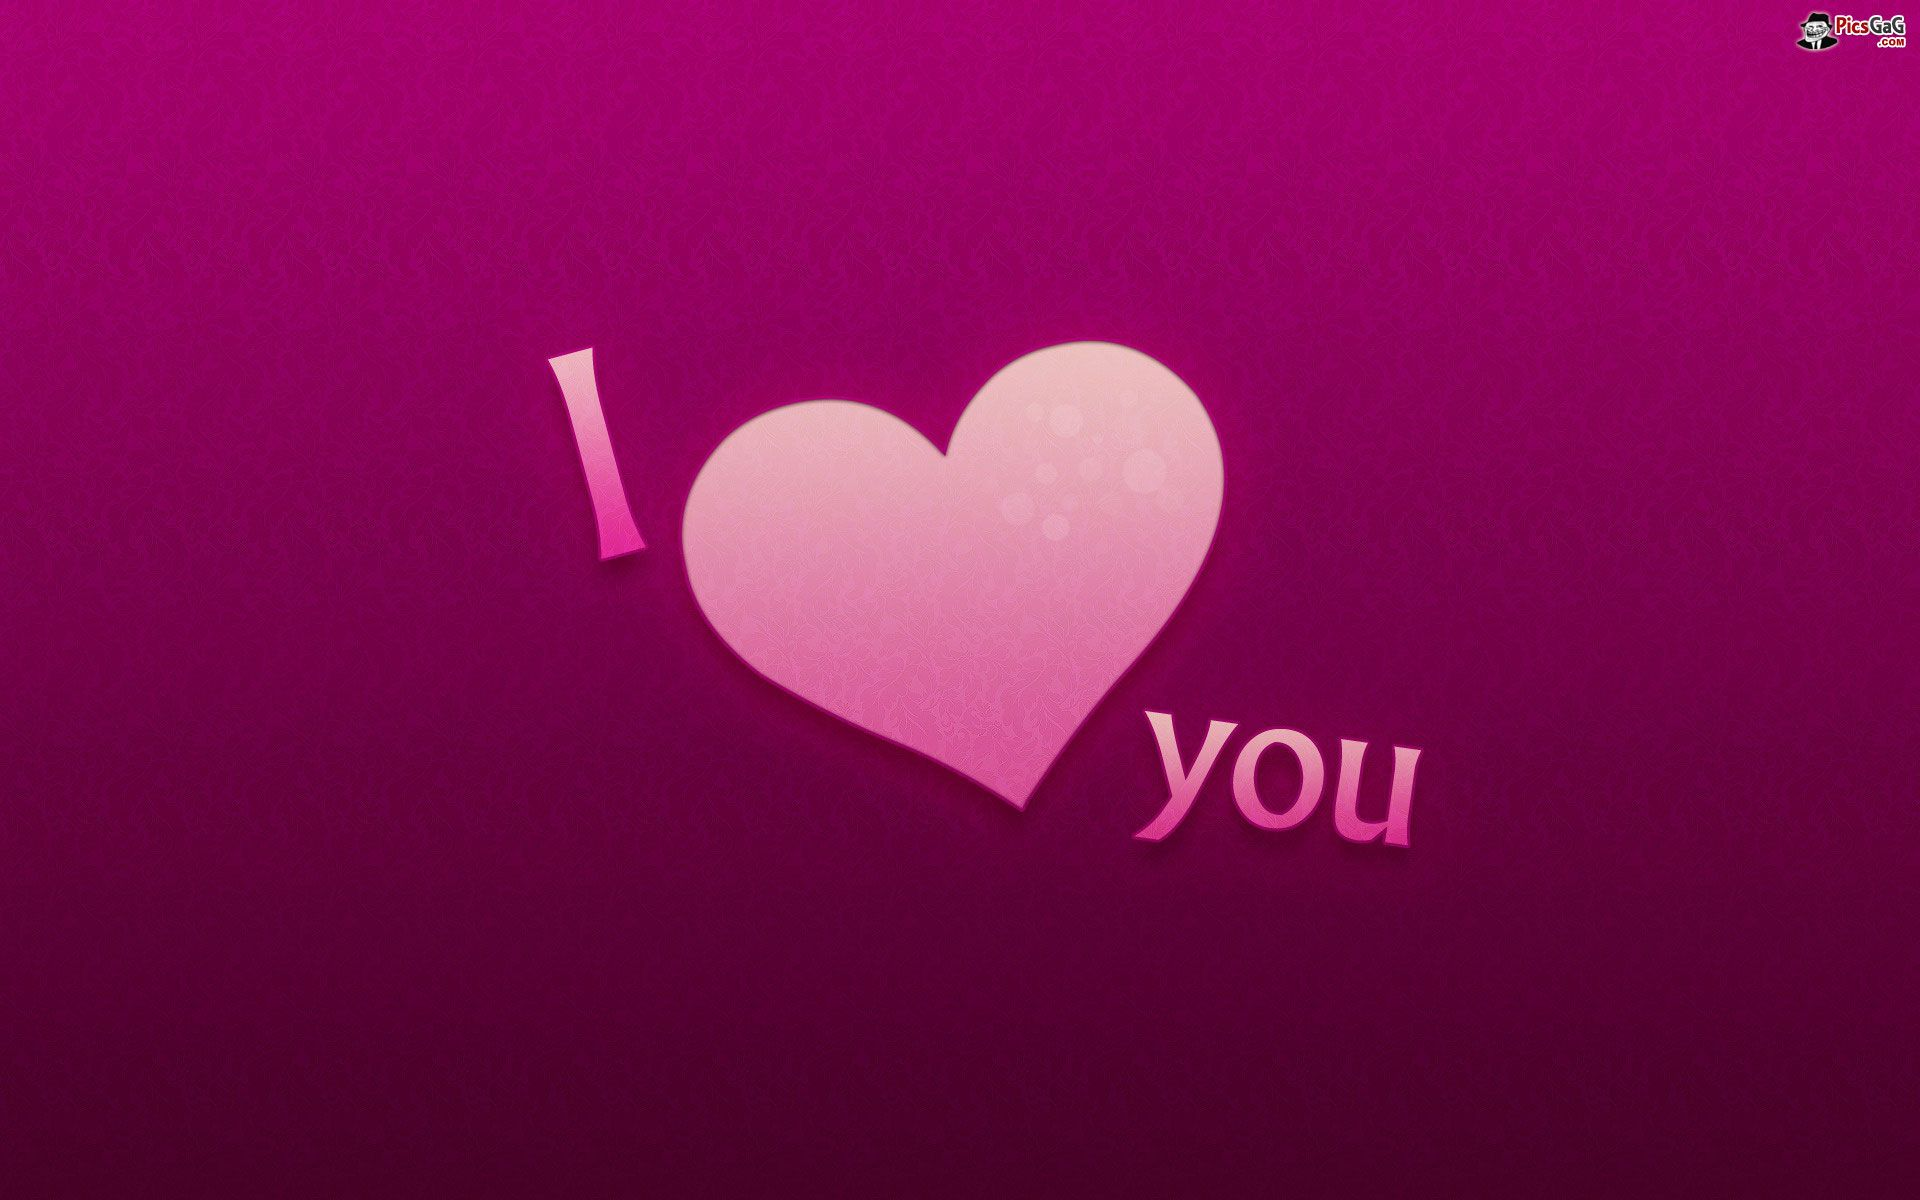 Wallpapers For Love Hearts Group  77   love heart wallpaper   AmusingFun com   Pictures and Graphics for